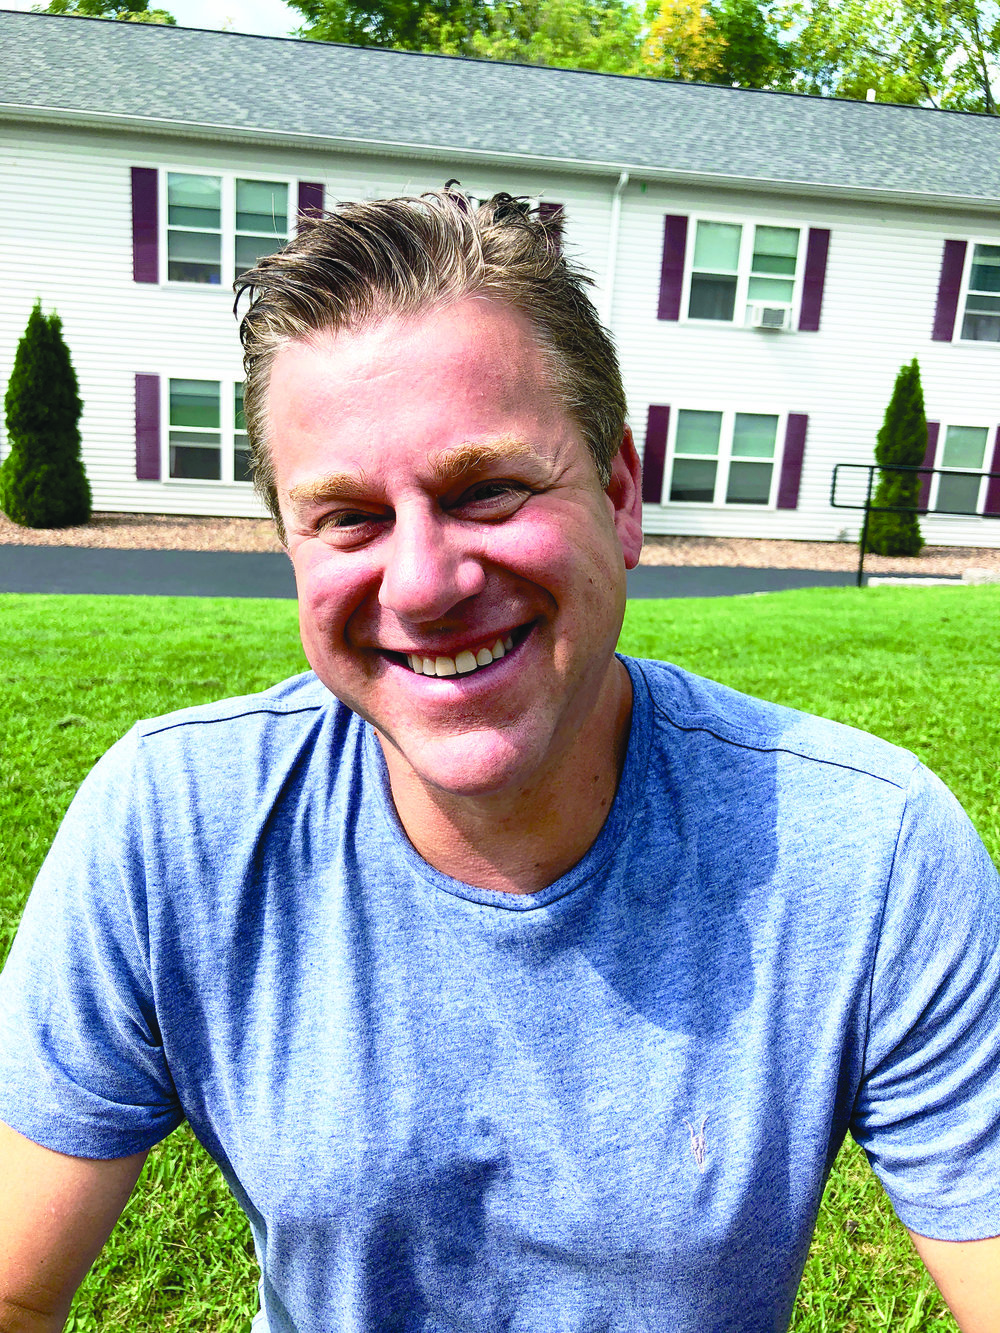 Mark Scoville (pictured above) has been involved with Geneseo real estate since 2002 and owns many student rentals and local businesses. Scoville recently bought and renovated a car garage on the corner of Wadsworth Street where many students go for auto repairs (Elizabeth Gellman/staff writer).